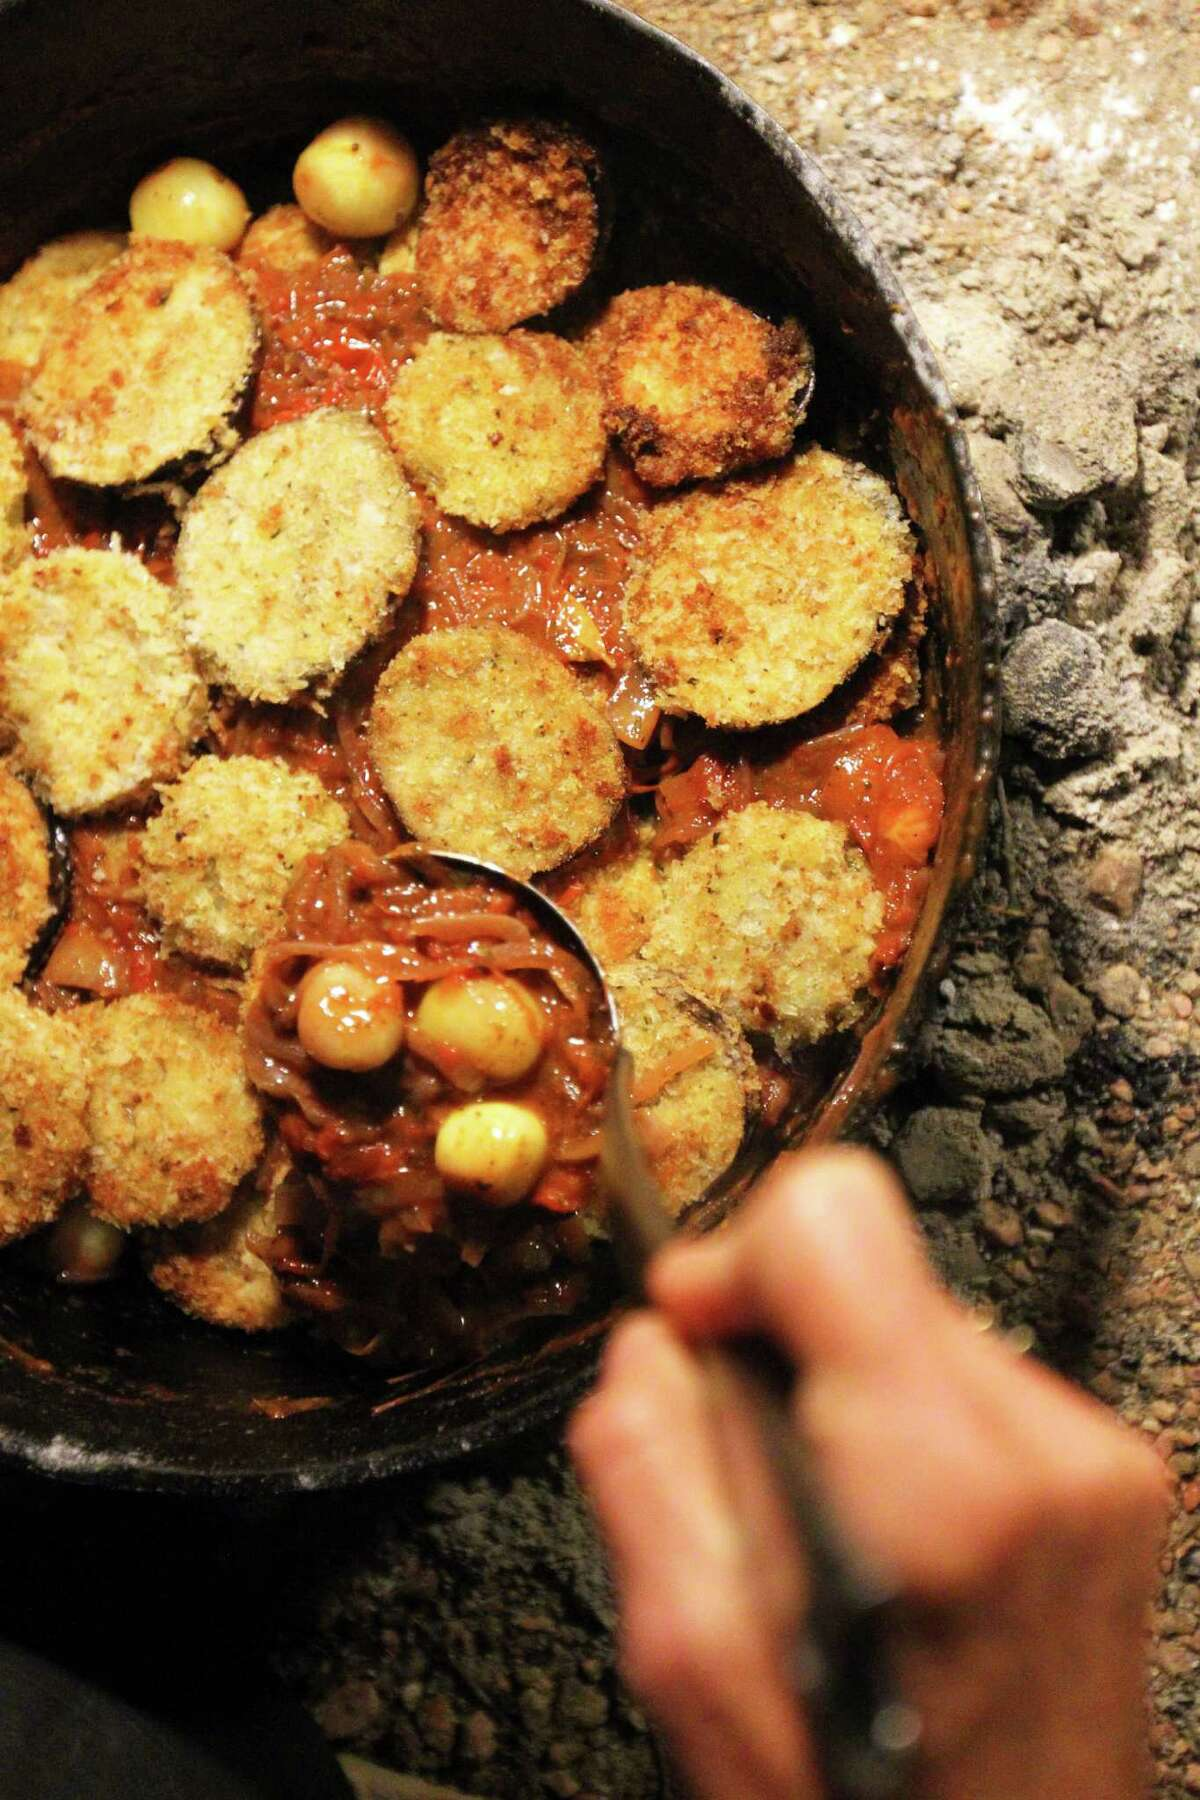 Bill Perry, who is a vegetarian, pours sauce over fried green tomatoes and eggplant to finish his award-winning Green Egg I Am I Am Ragu.